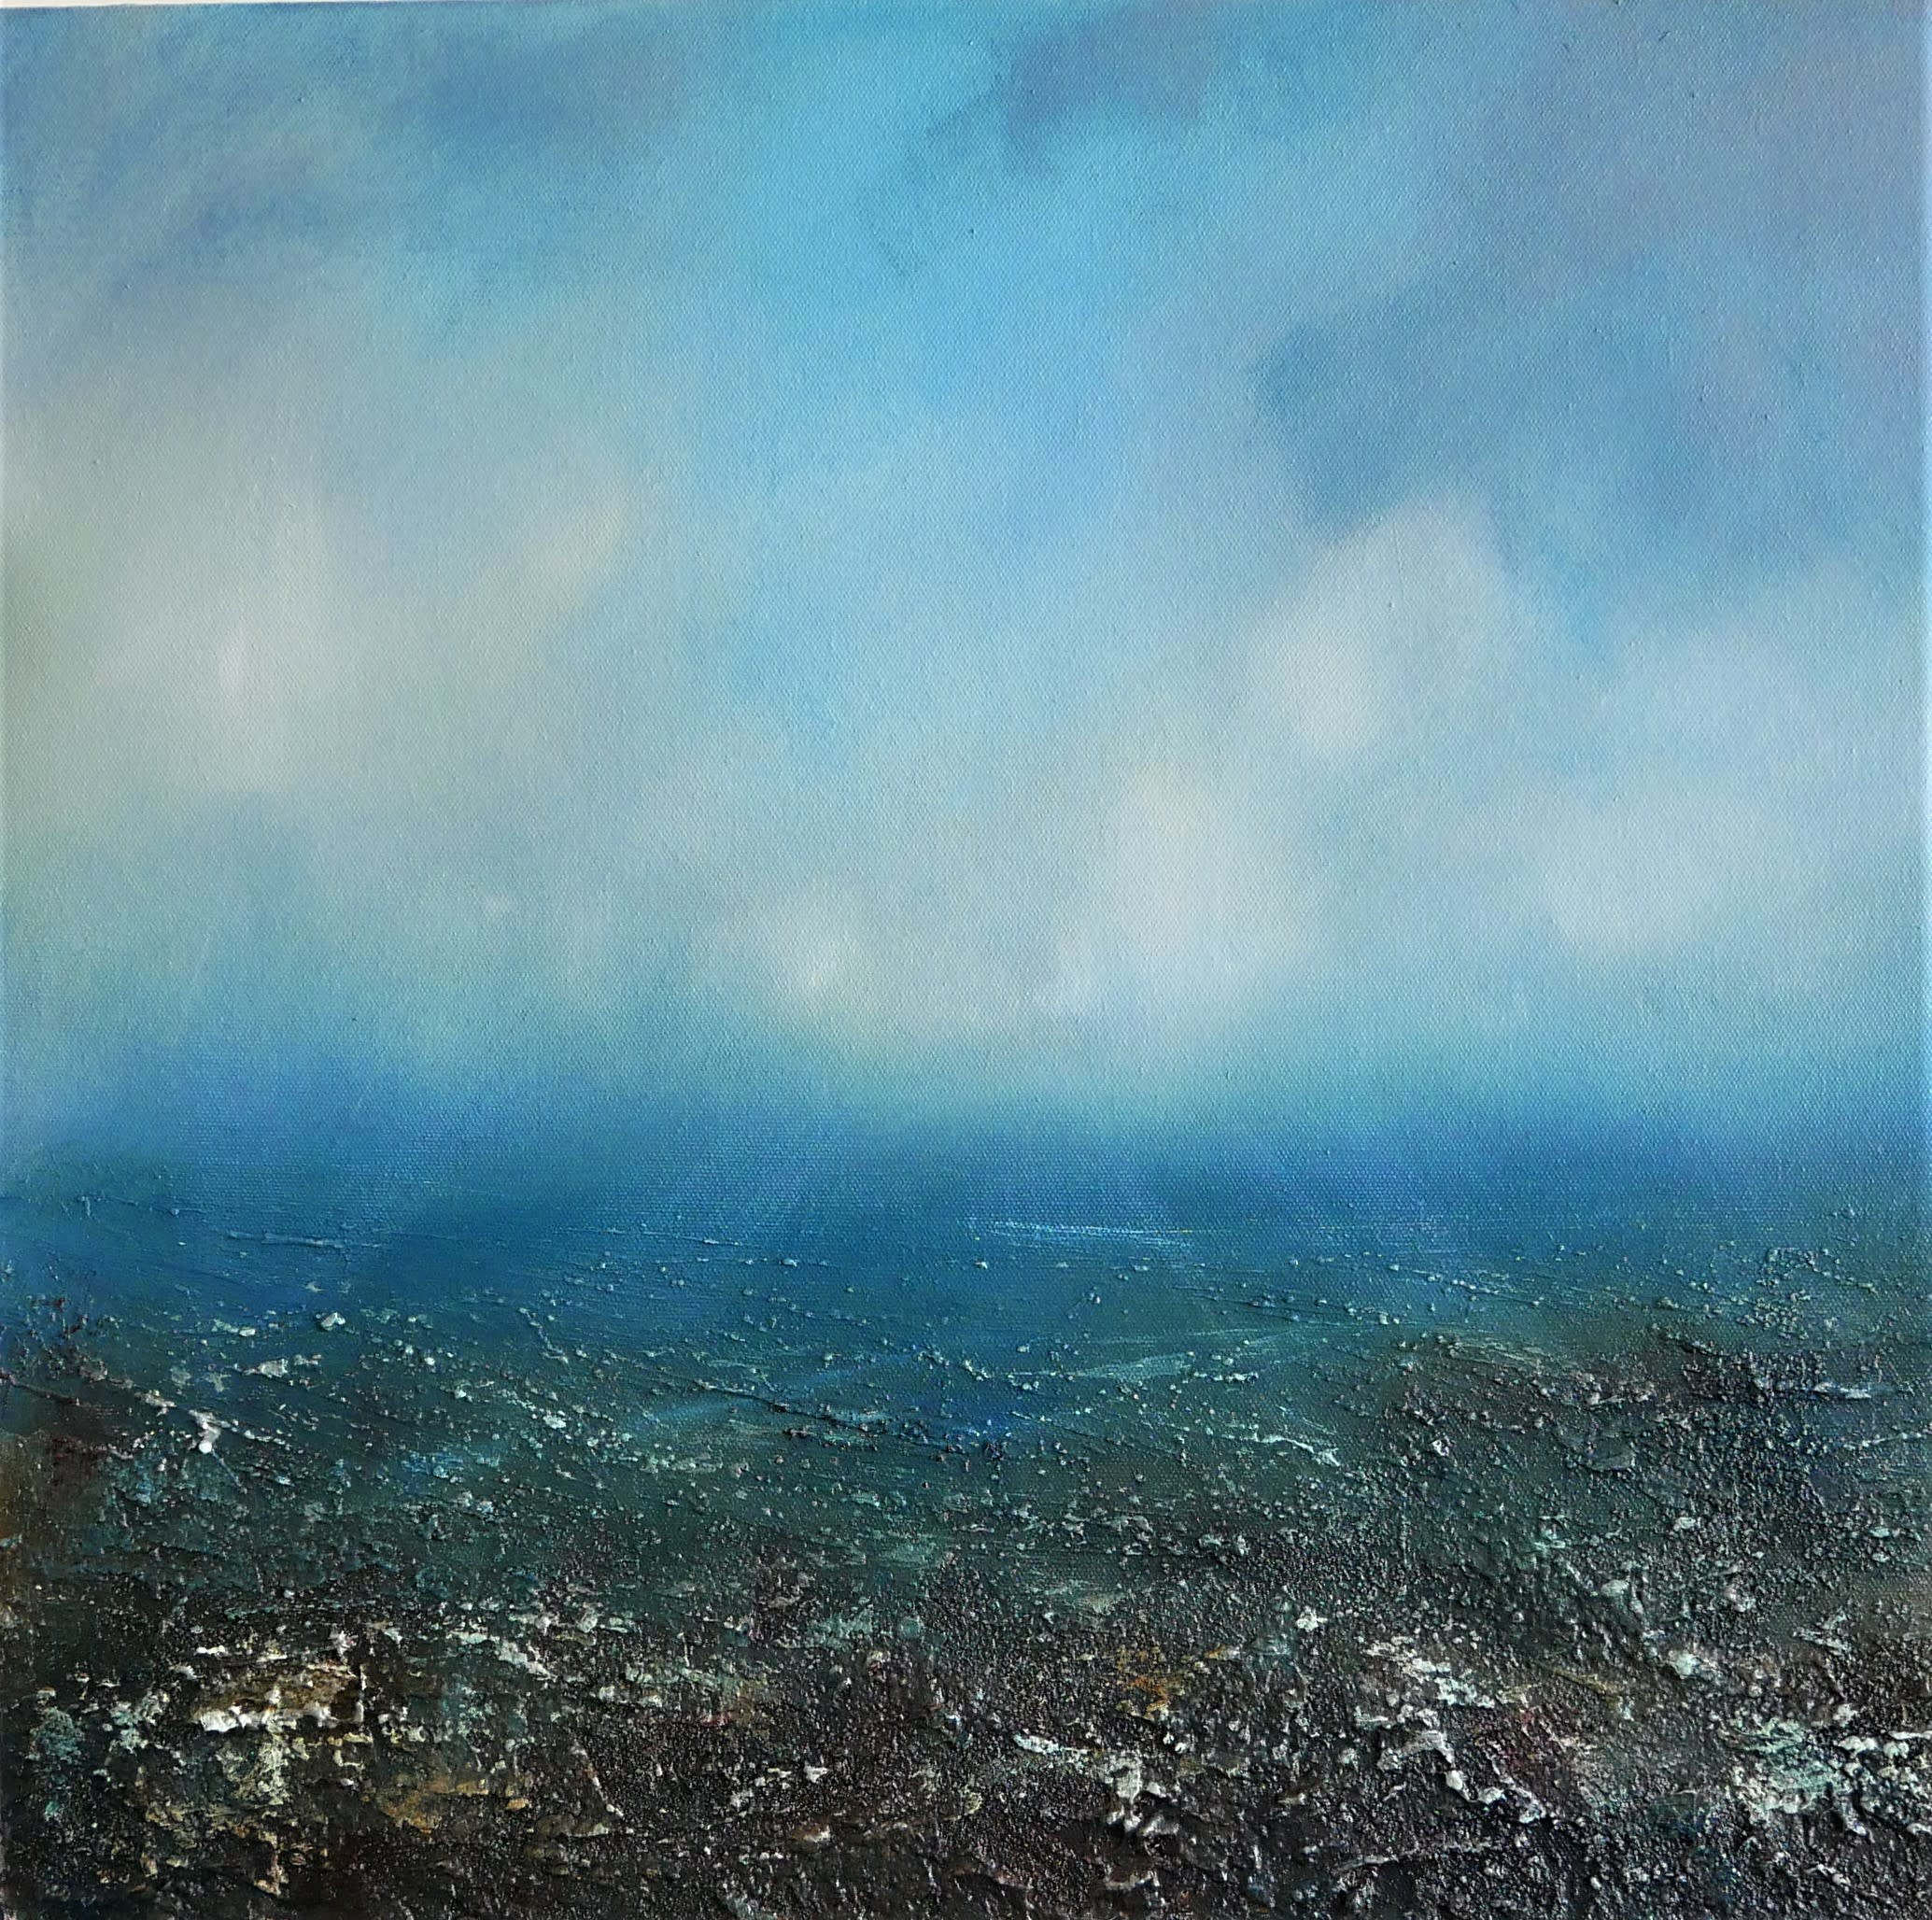 "<span class=""link fancybox-details-link""><a href=""/artists/78-martyn-perryman/works/6498-martyn-perryman-enduring-light-2-2019/"">View Detail Page</a></span><div class=""artist""><strong>Martyn Perryman</strong></div> <div class=""title""><em>Enduring Light 2 </em>, 2019 </div> <div class=""medium"">oil on canvas</div> <div class=""dimensions"">h. 50 x w. 50 cm </div><div class=""copyright_line"">Ownart: £79 x 10 Months, 0% APR</div>"